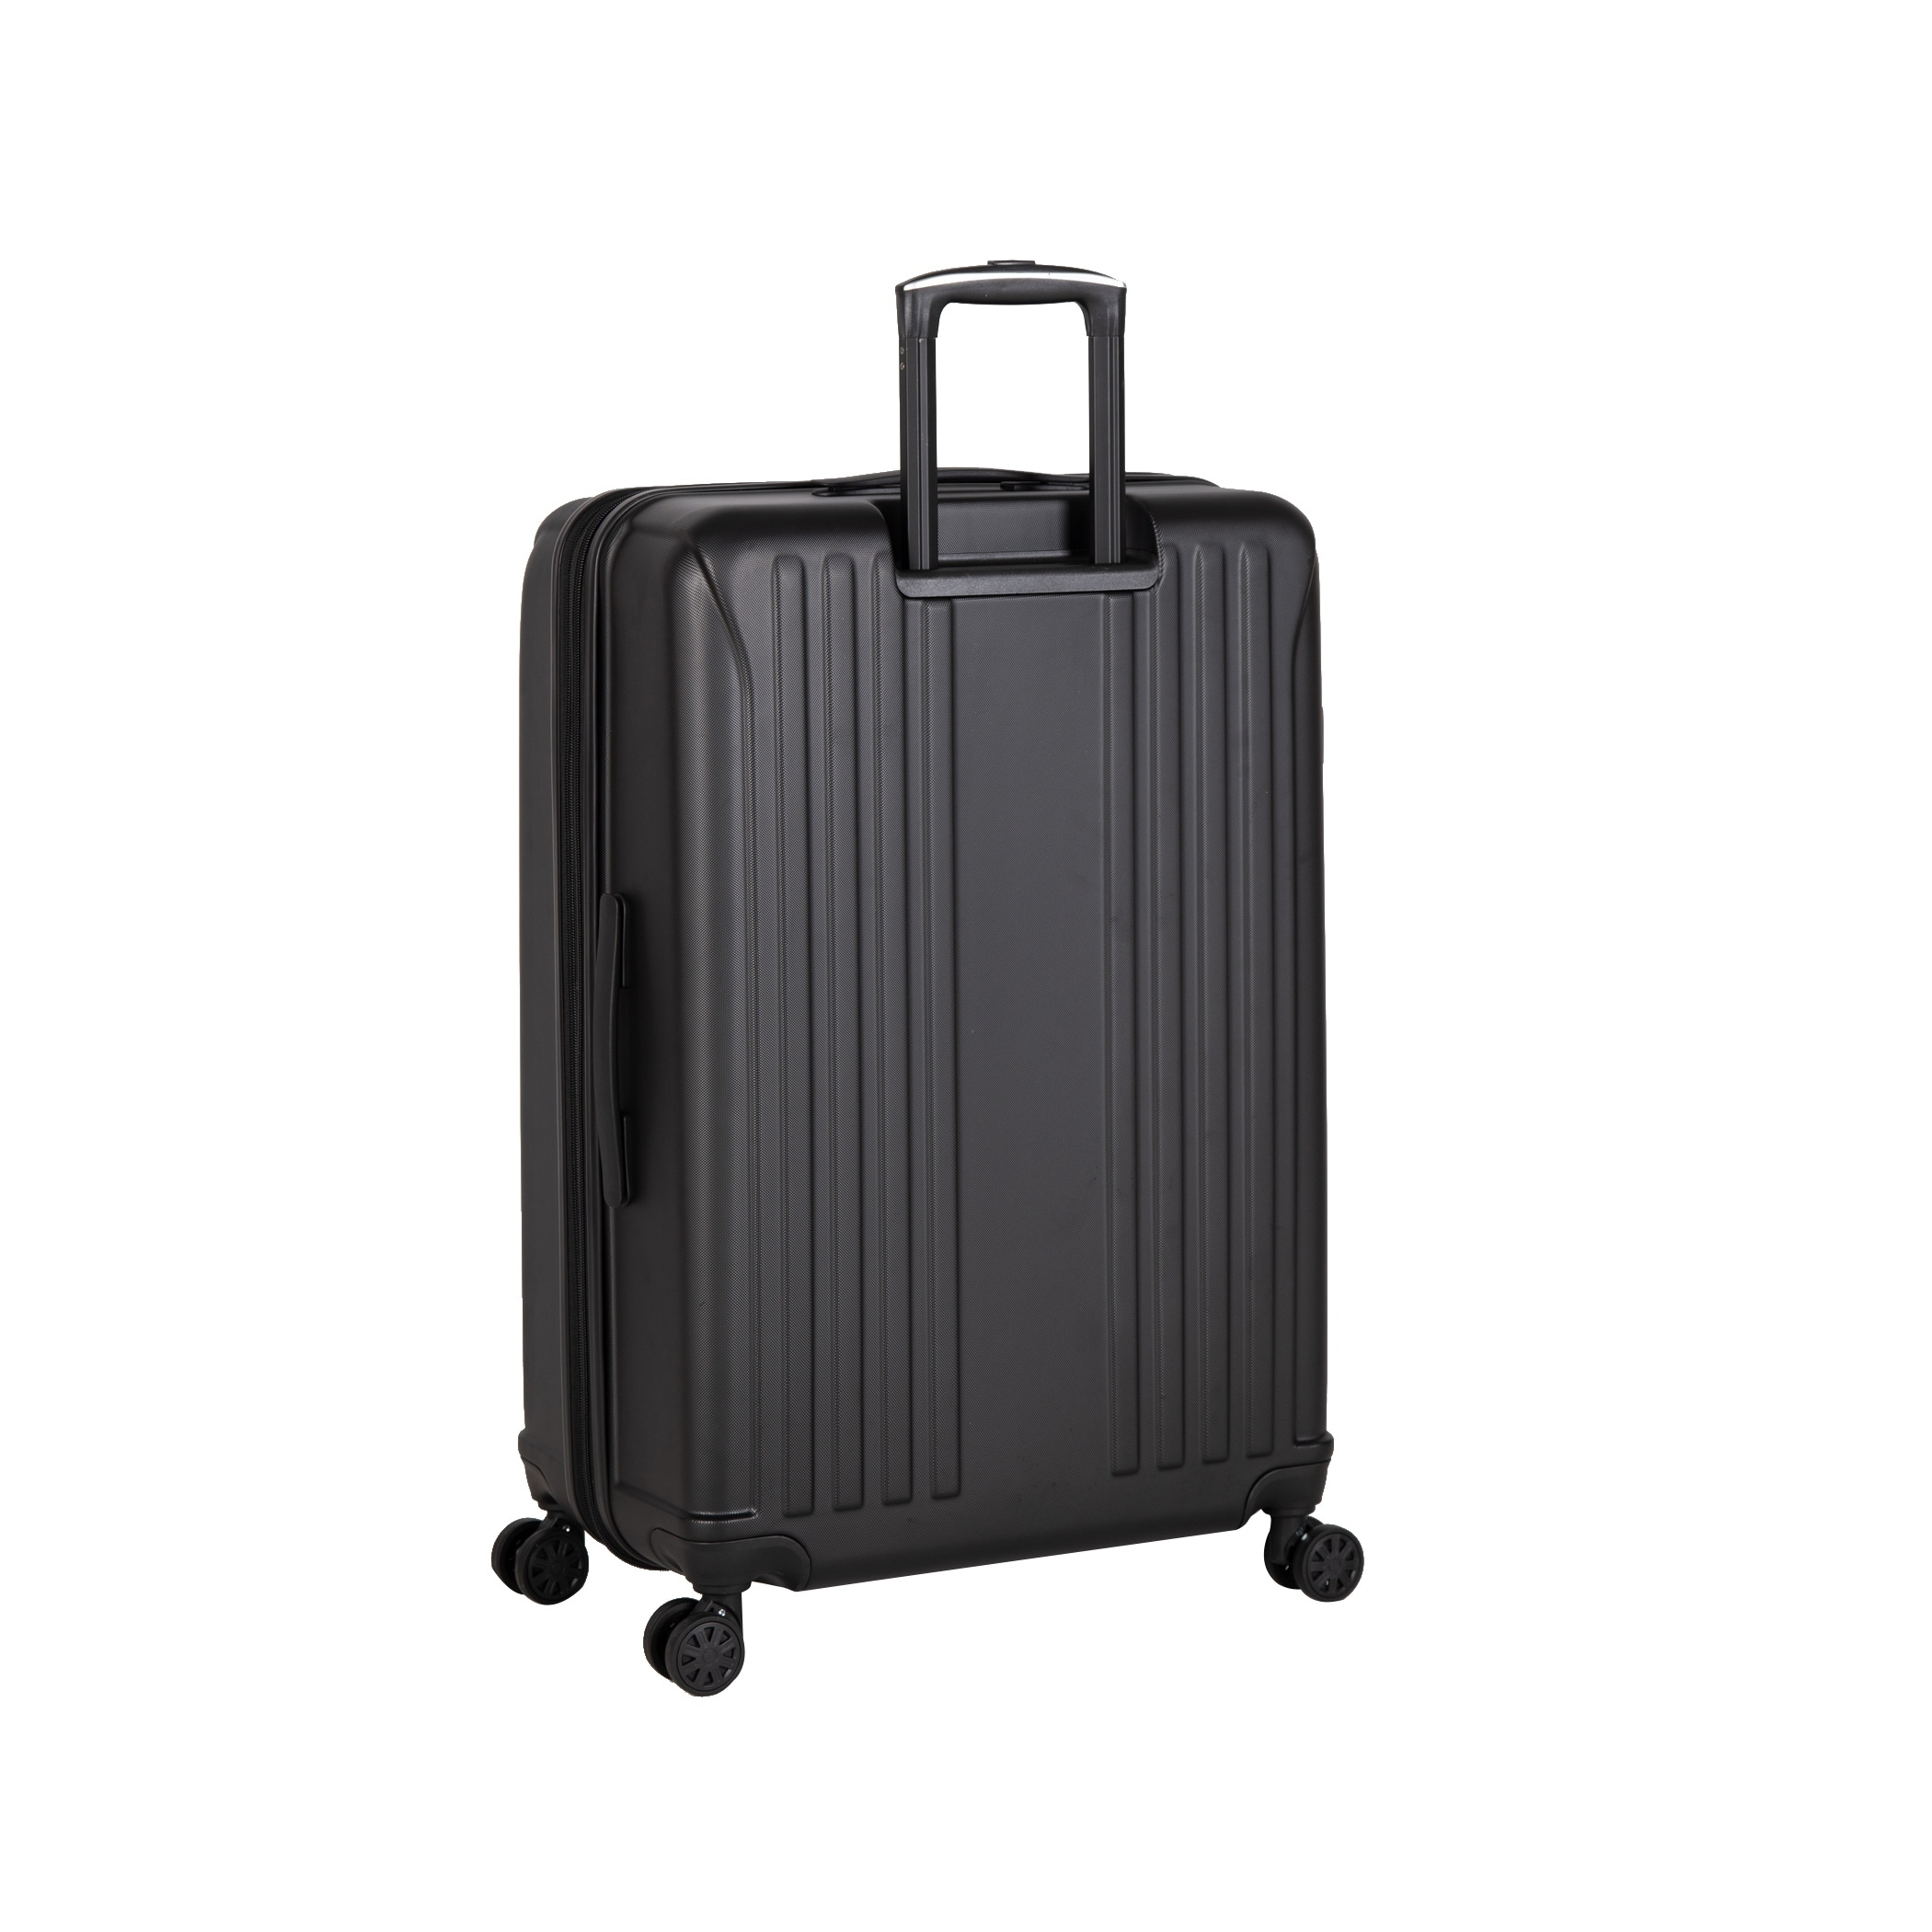 c616b0bfd American Flyer Moraga 29-Inch 8-Wheel Hardside Spinner Luggage - 12.2 In. X  18.9 In. X 29.5 In.